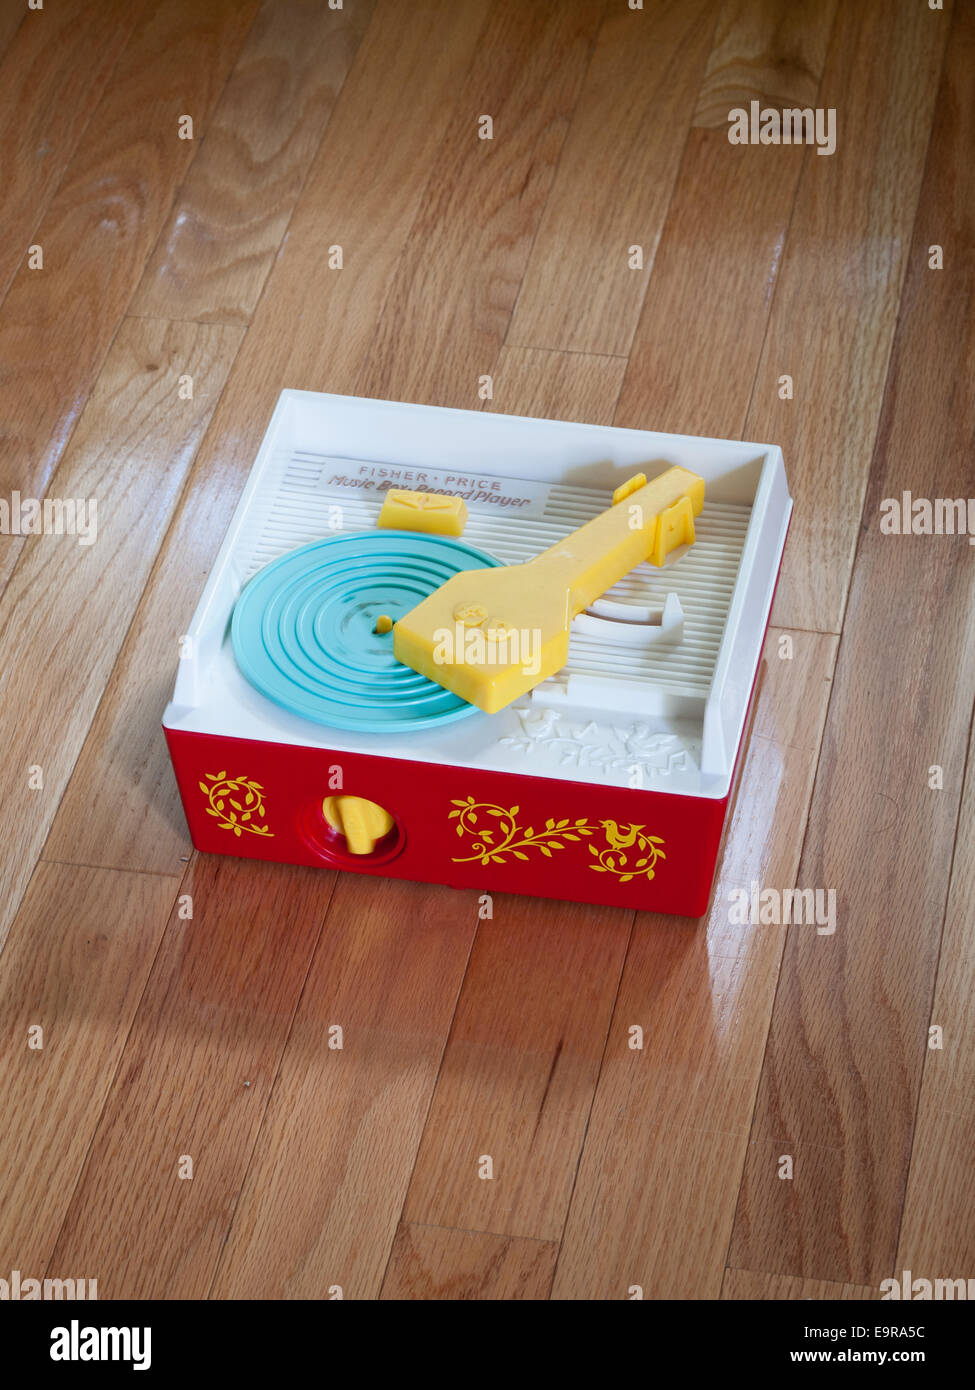 A Fisher-Price Classic Record Player (Fisher Price Change-A-Record Music Box). - Stock Image